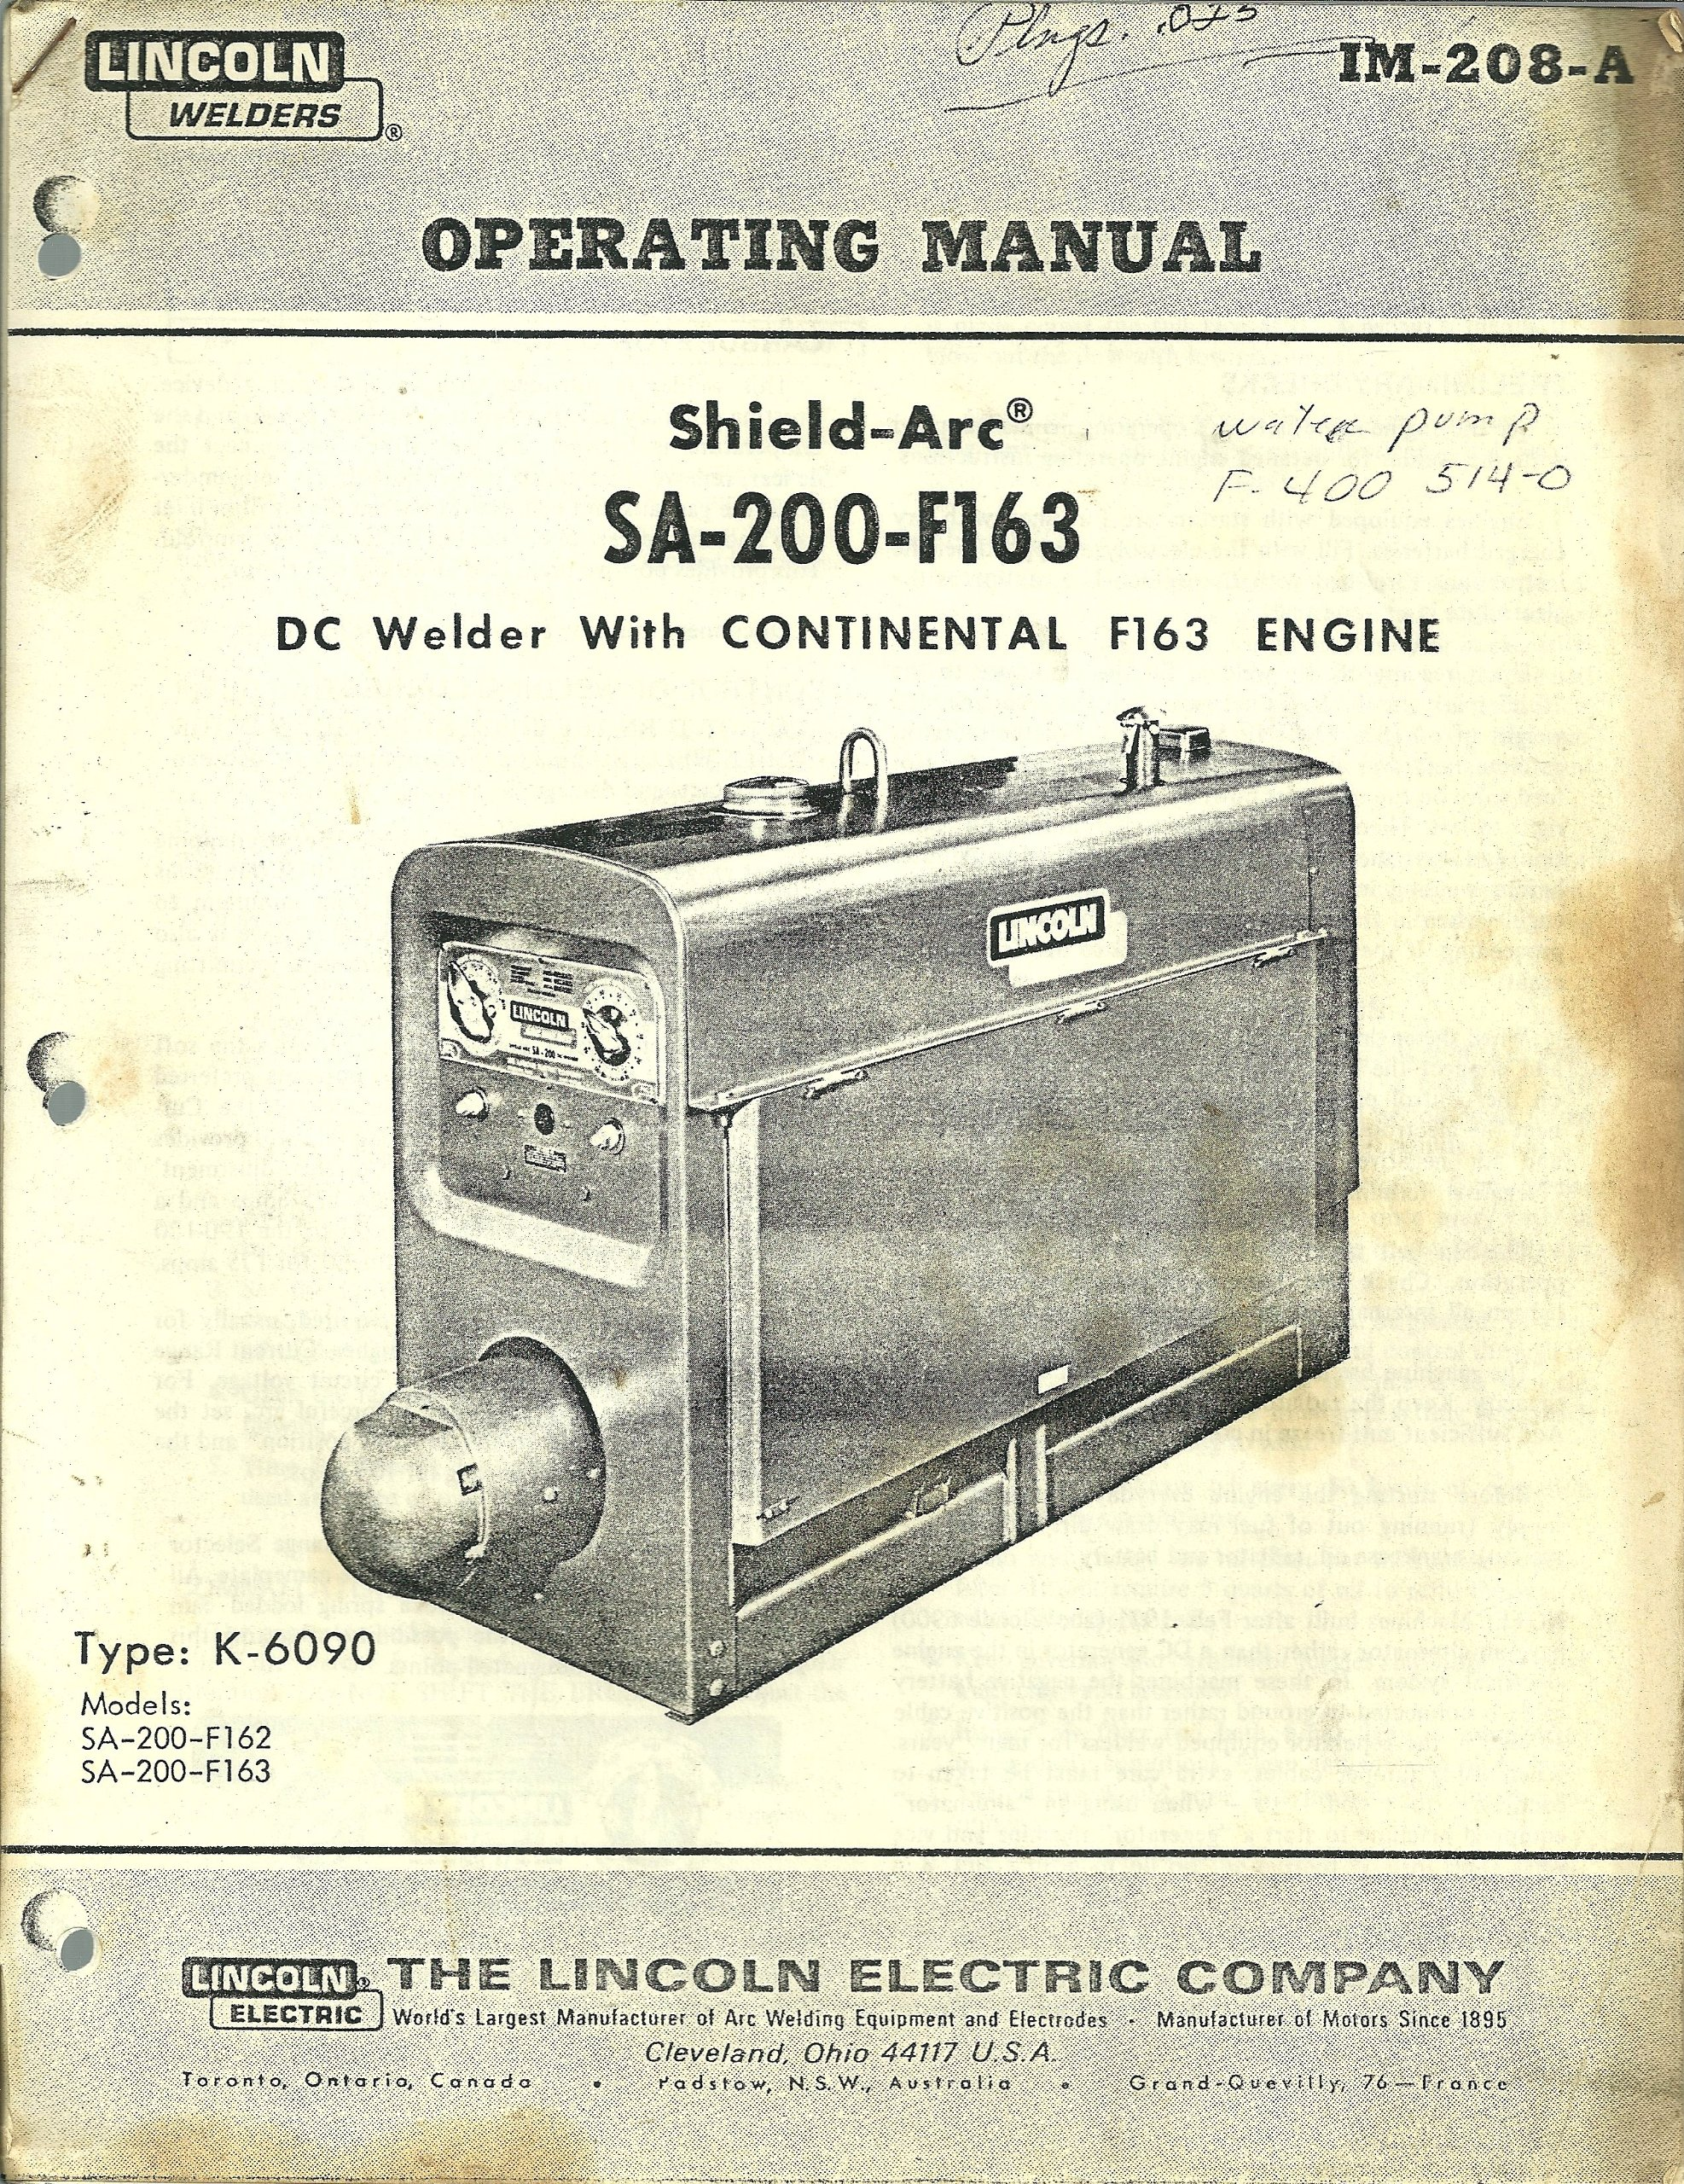 Operating Manual, Shield-arc, Sa-200-f163, dc Welder with Continental F163  Engine, Type K-6090, Models:sa-200-f162, Sa-200-f163, Lincoln Welders, ...